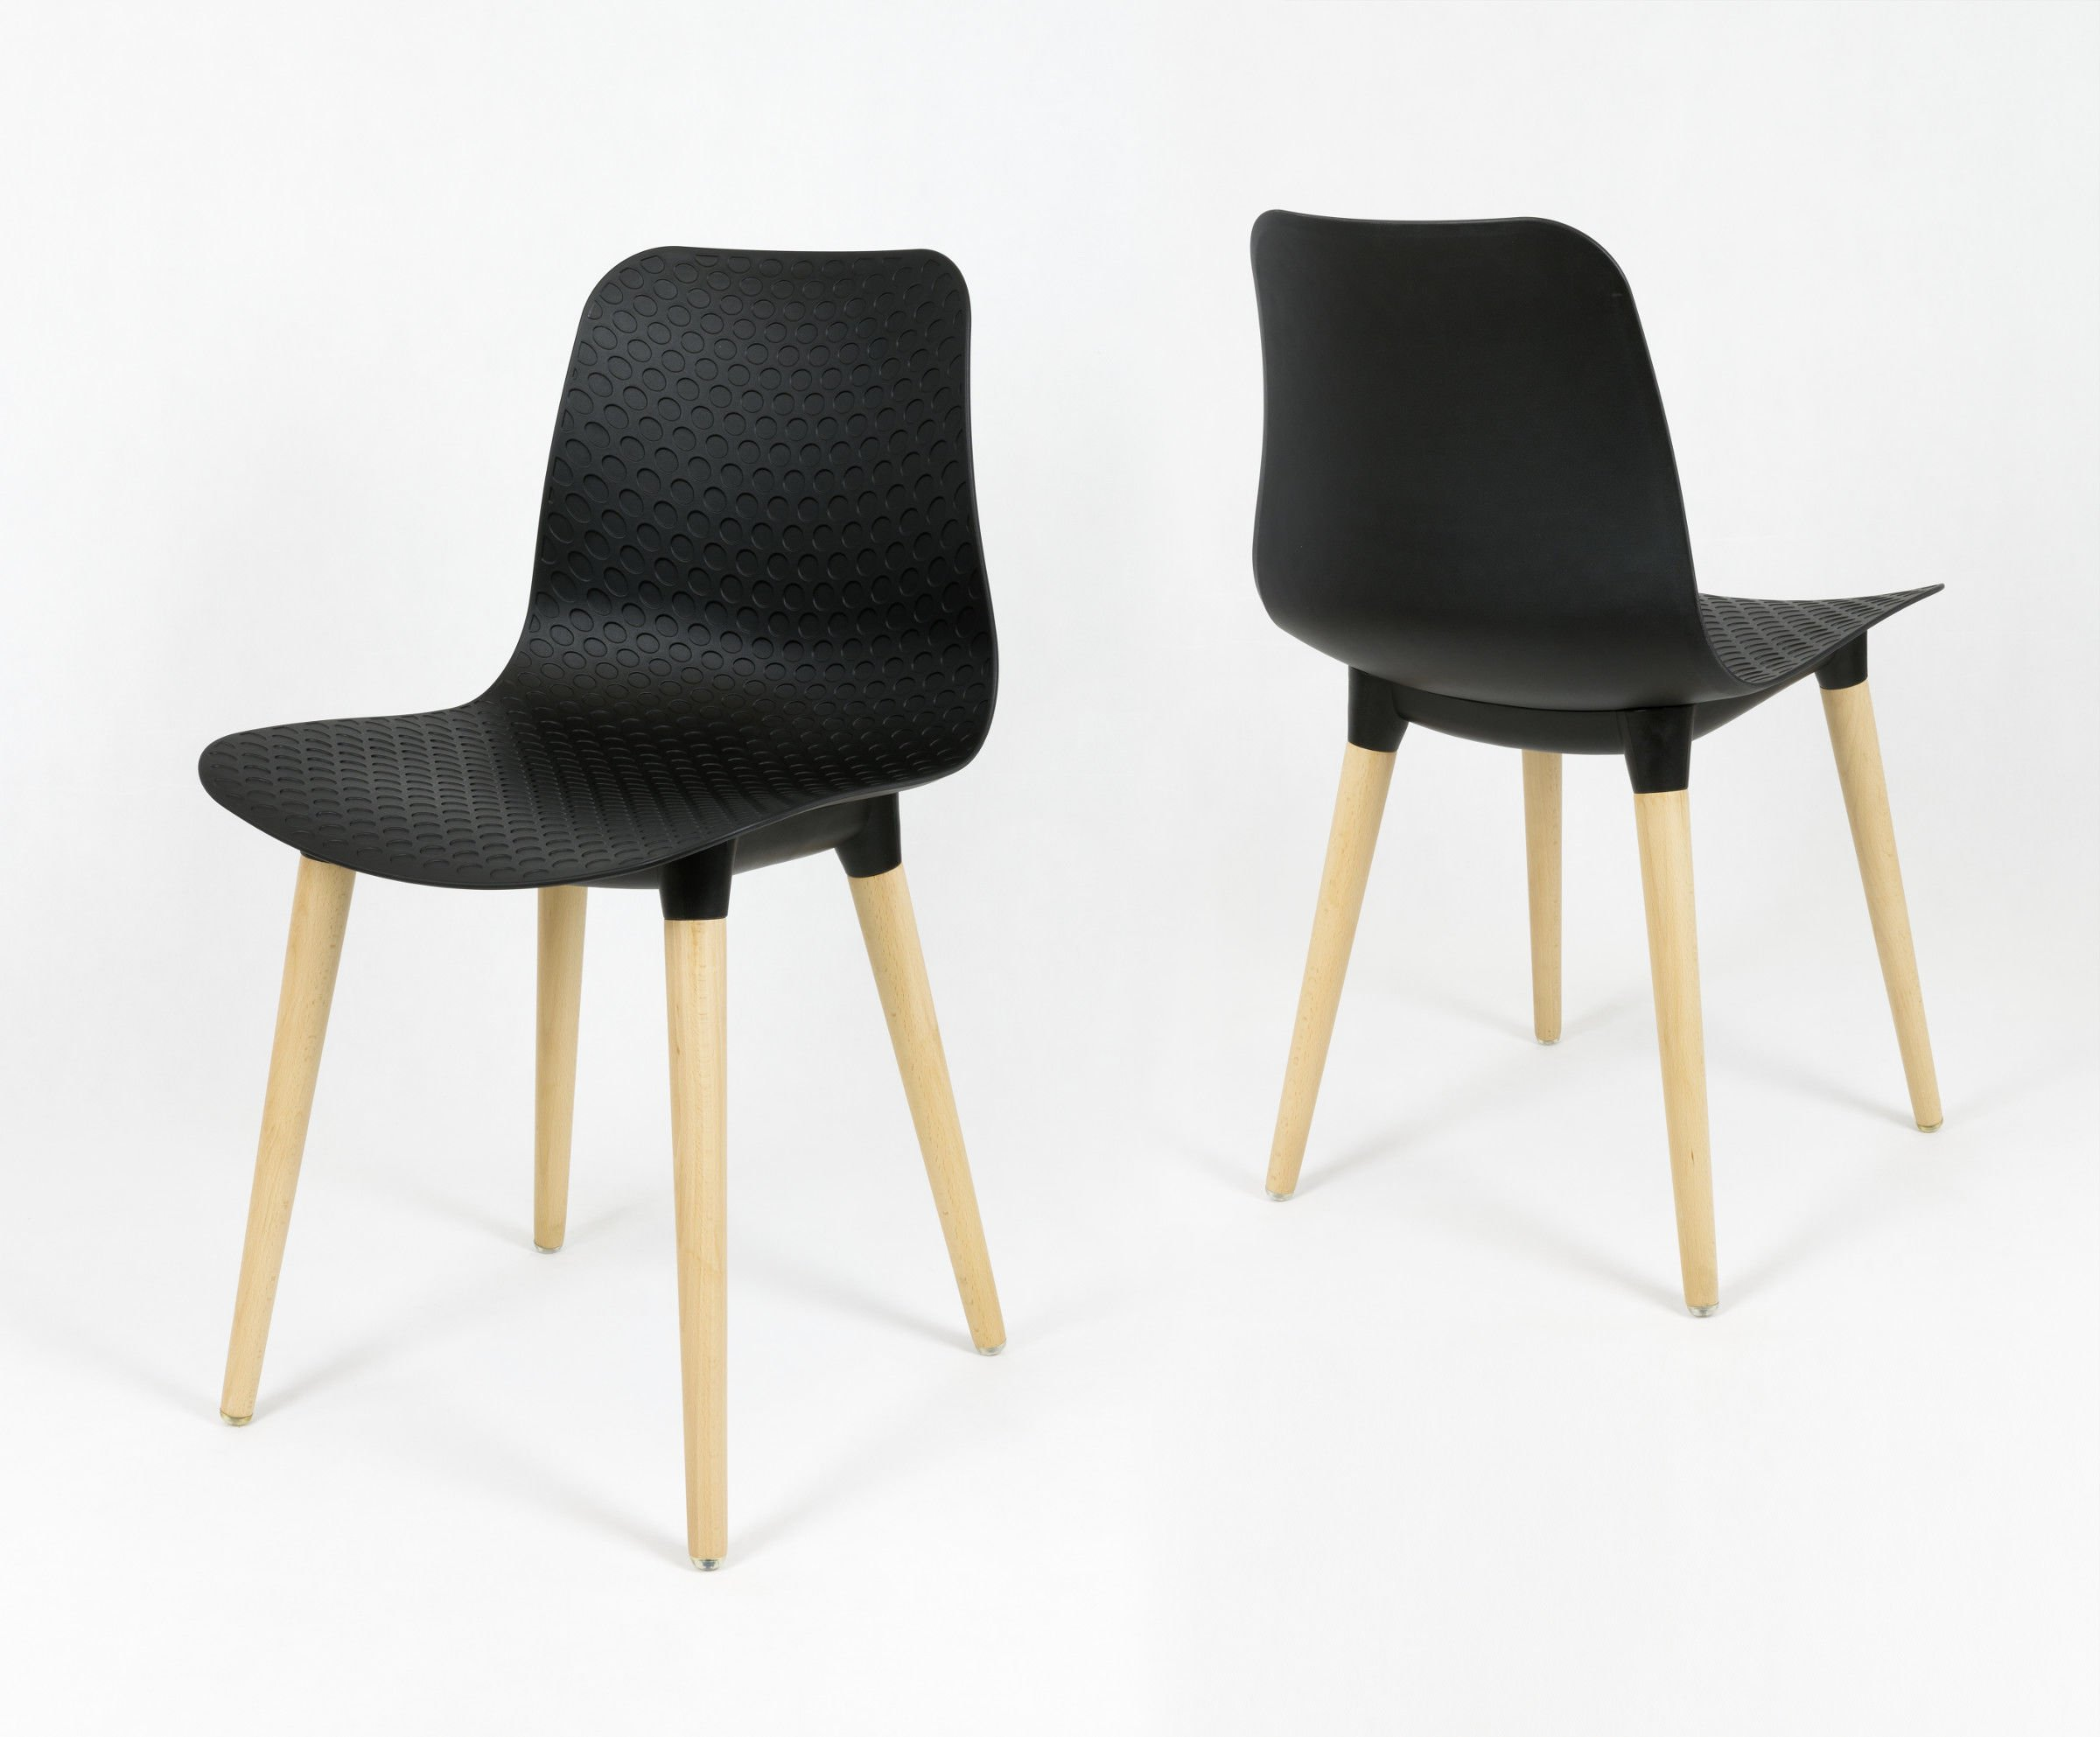 Sk design kr060 black chair click to zoom